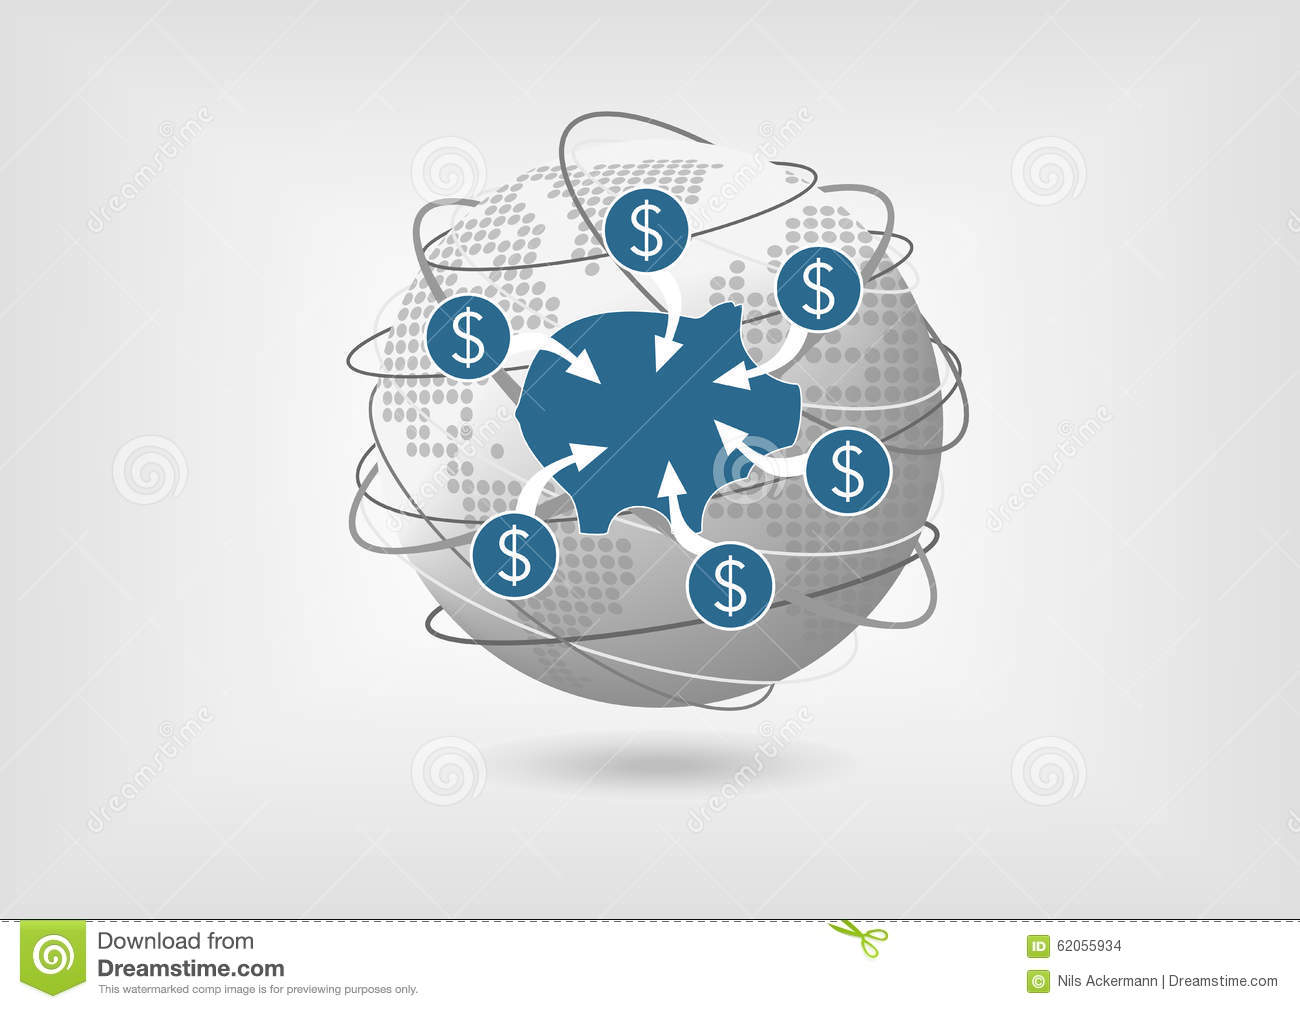 Concept to withdraw money from savings account in global economy.